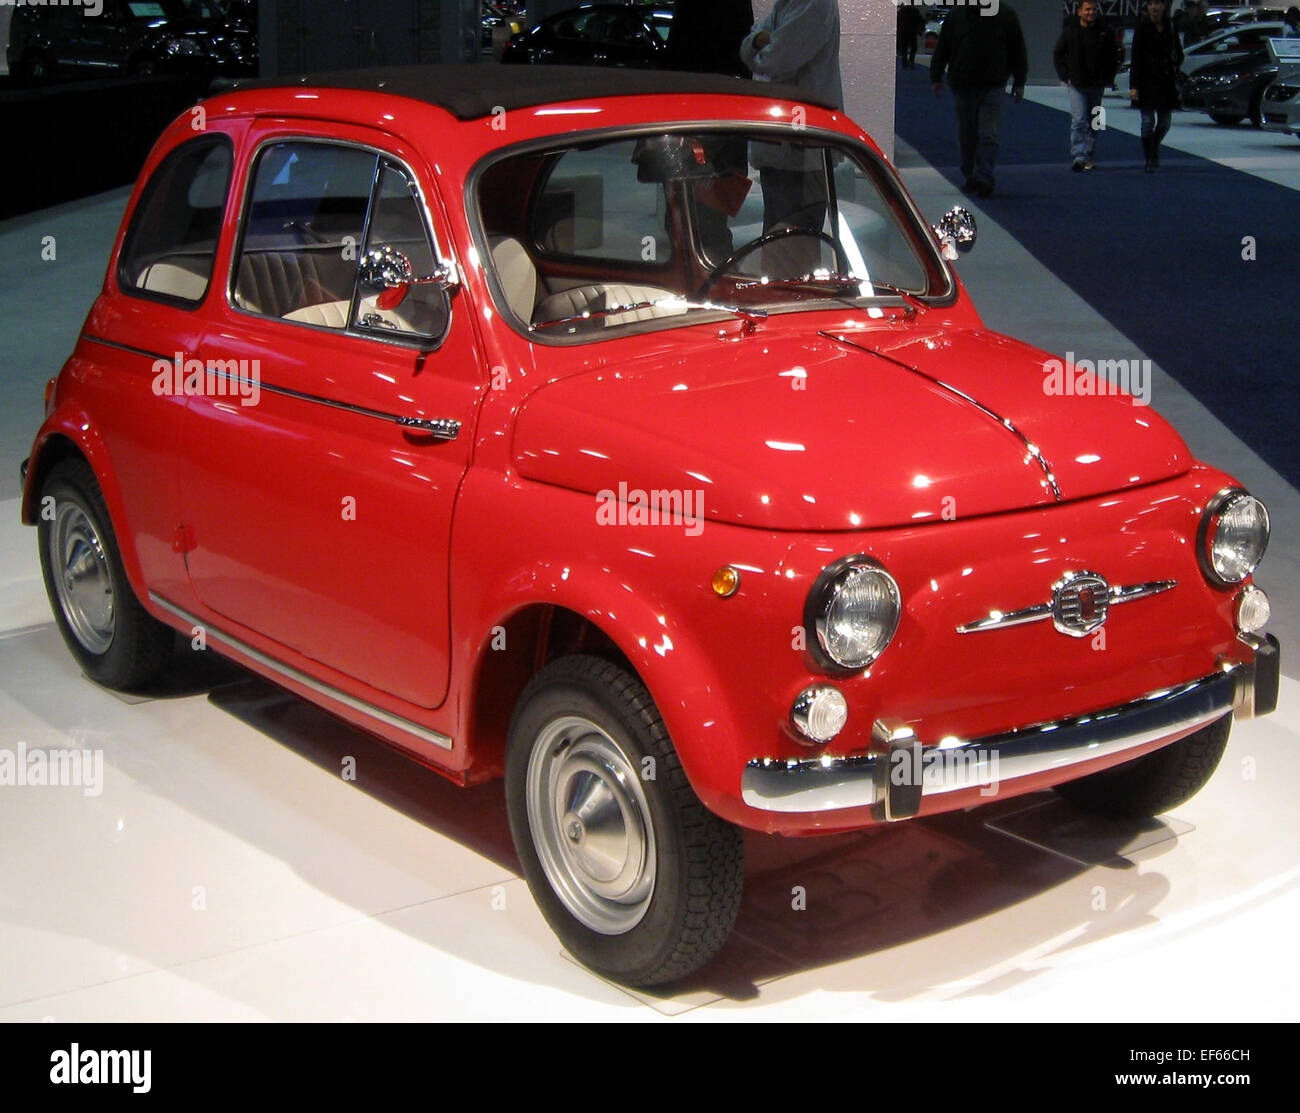 2012 fiat 500 stockfotos 2012 fiat 500 bilder alamy. Black Bedroom Furniture Sets. Home Design Ideas